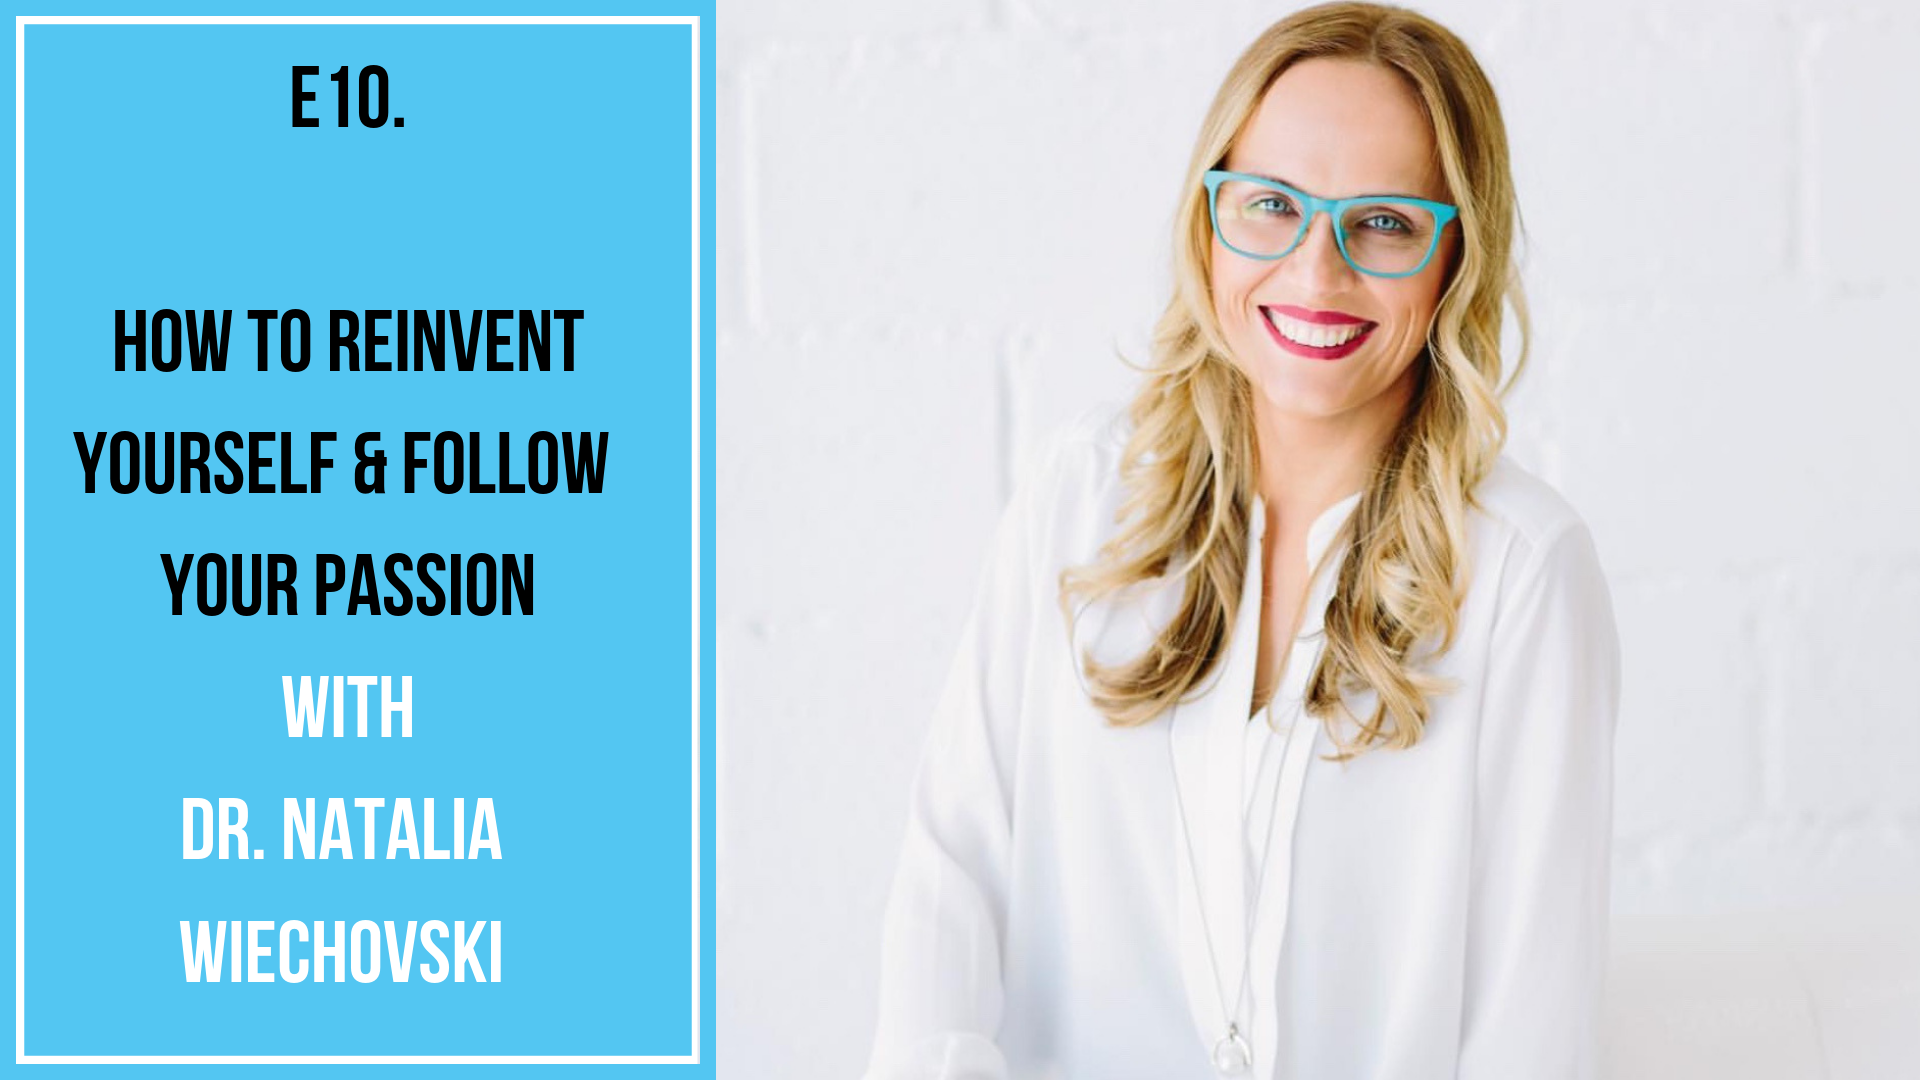 E10. How to reinvent yourself & follow your passion with Dr Natalia Wiechovski (1).png